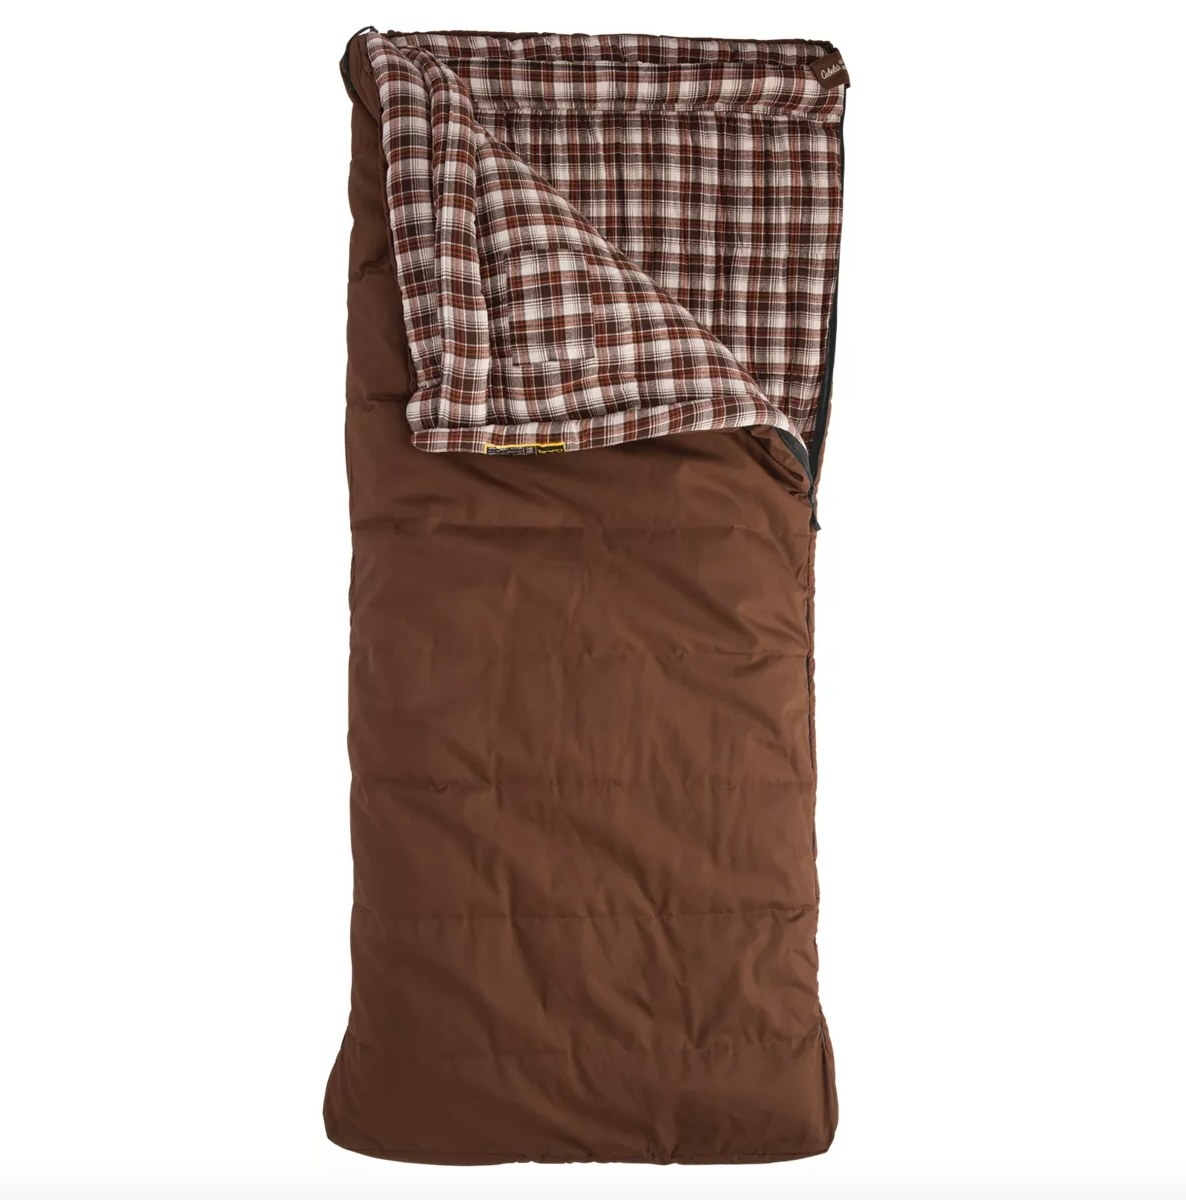 the sleeping bag in brown and plaid